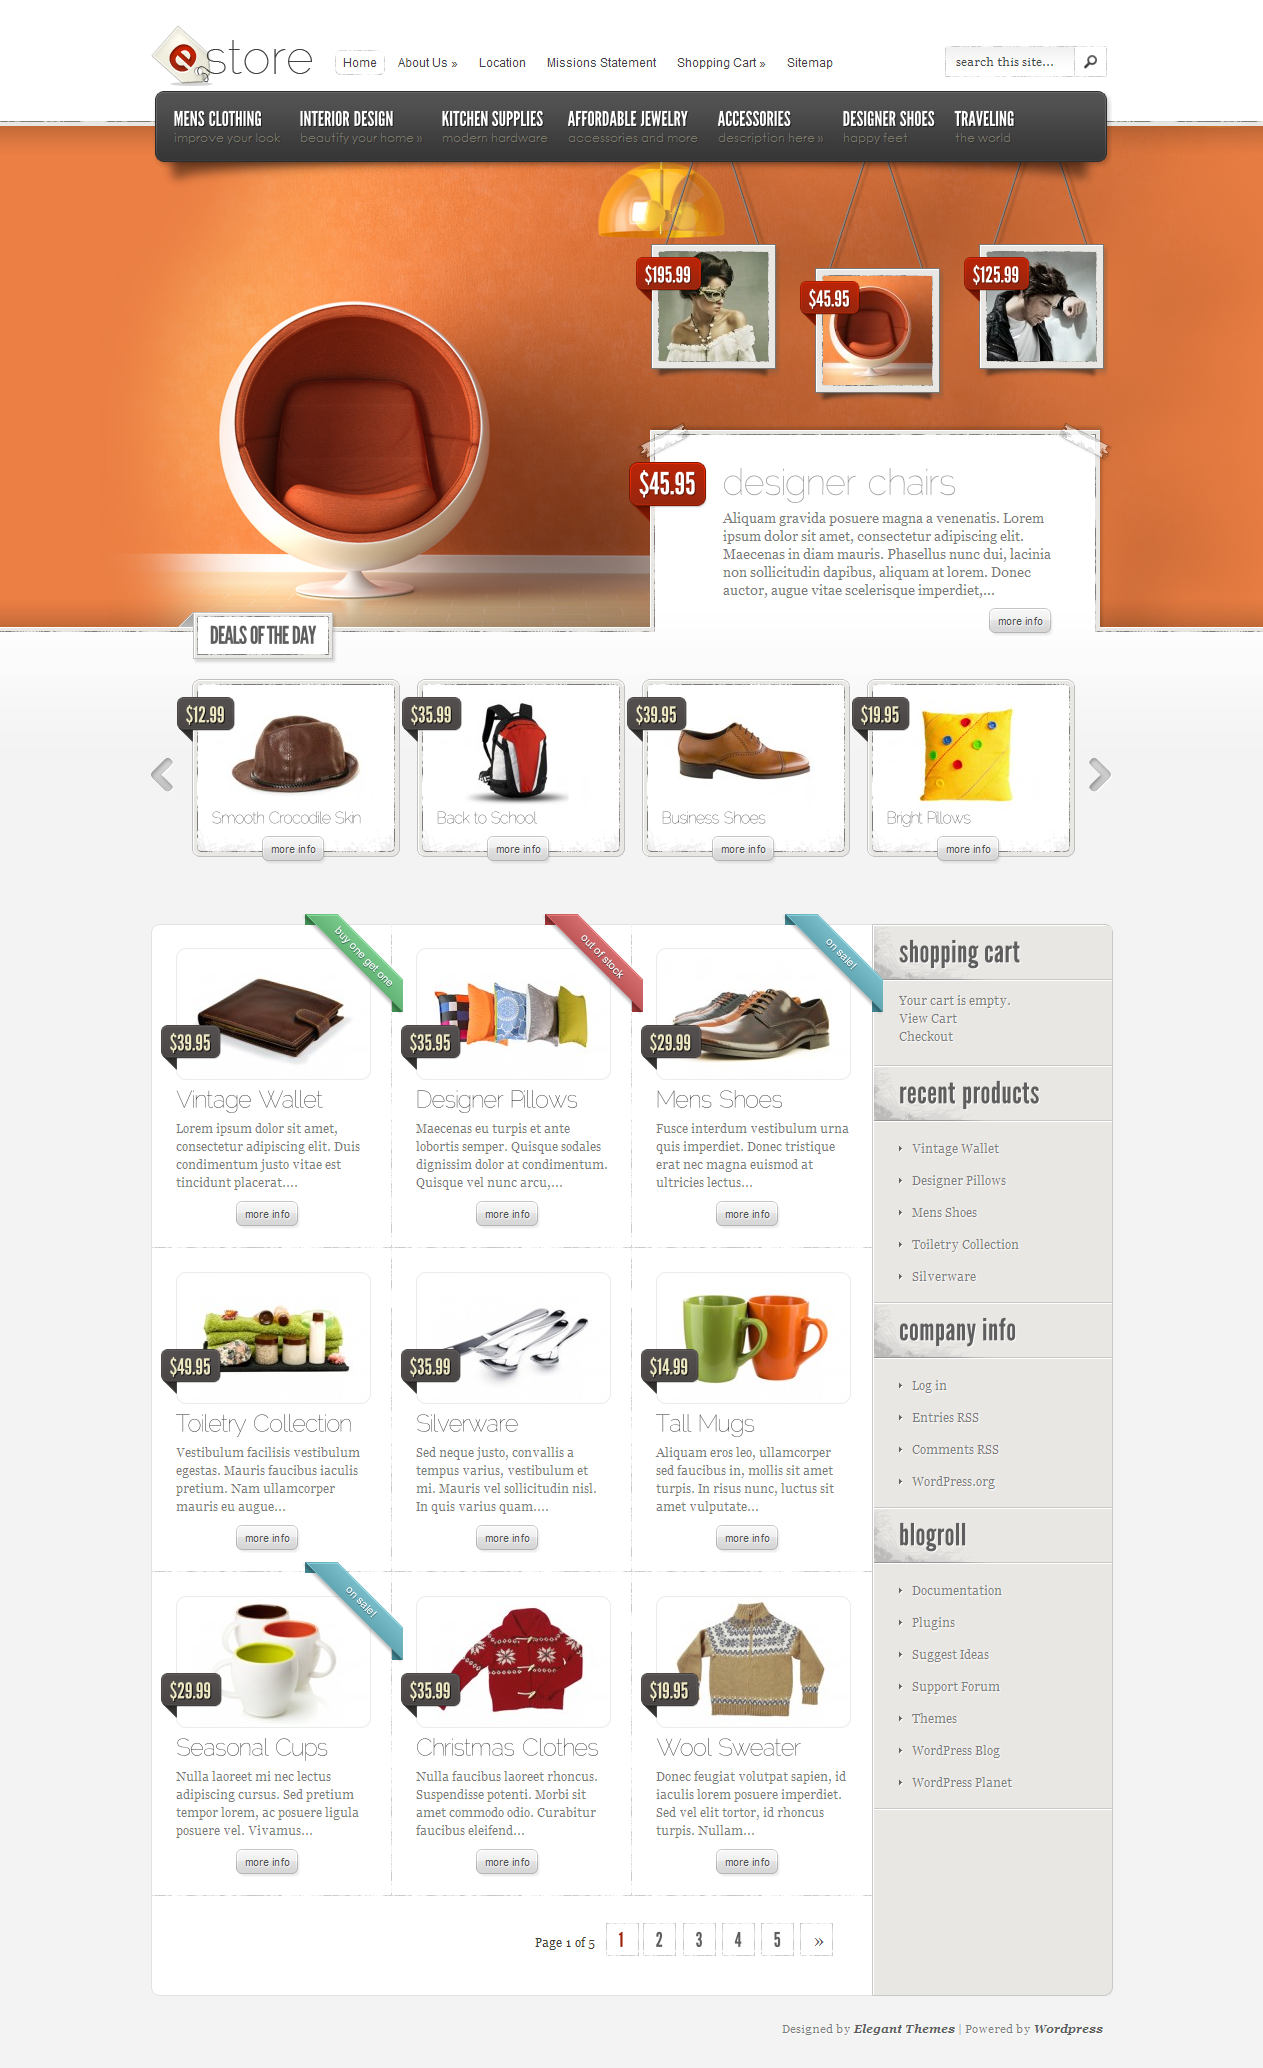 Designed by elegant themes powered by wordpress - Which Elegant Theme Do You Want For Your Wordpress Site